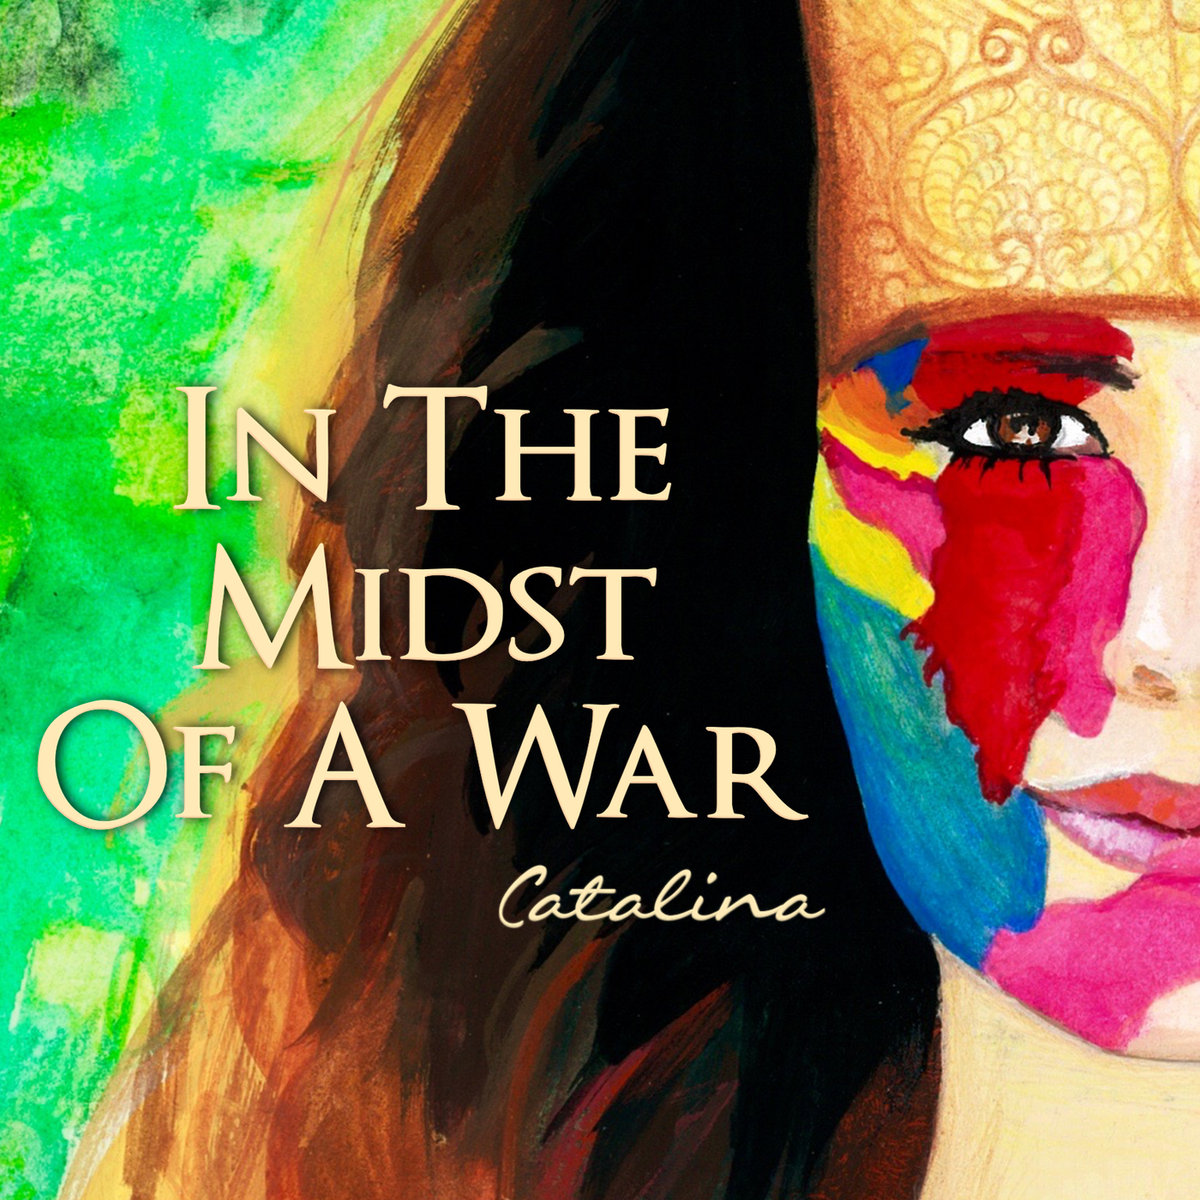 Catalina - In The Midst Of a War